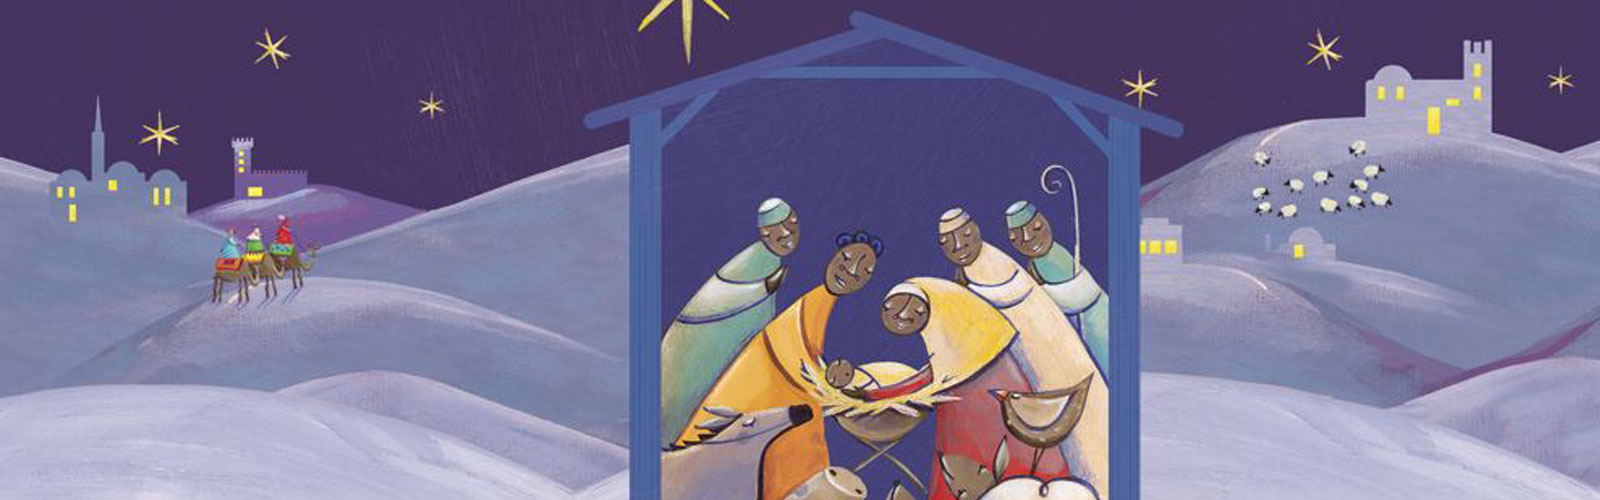 Advent calendar 2016 for young people